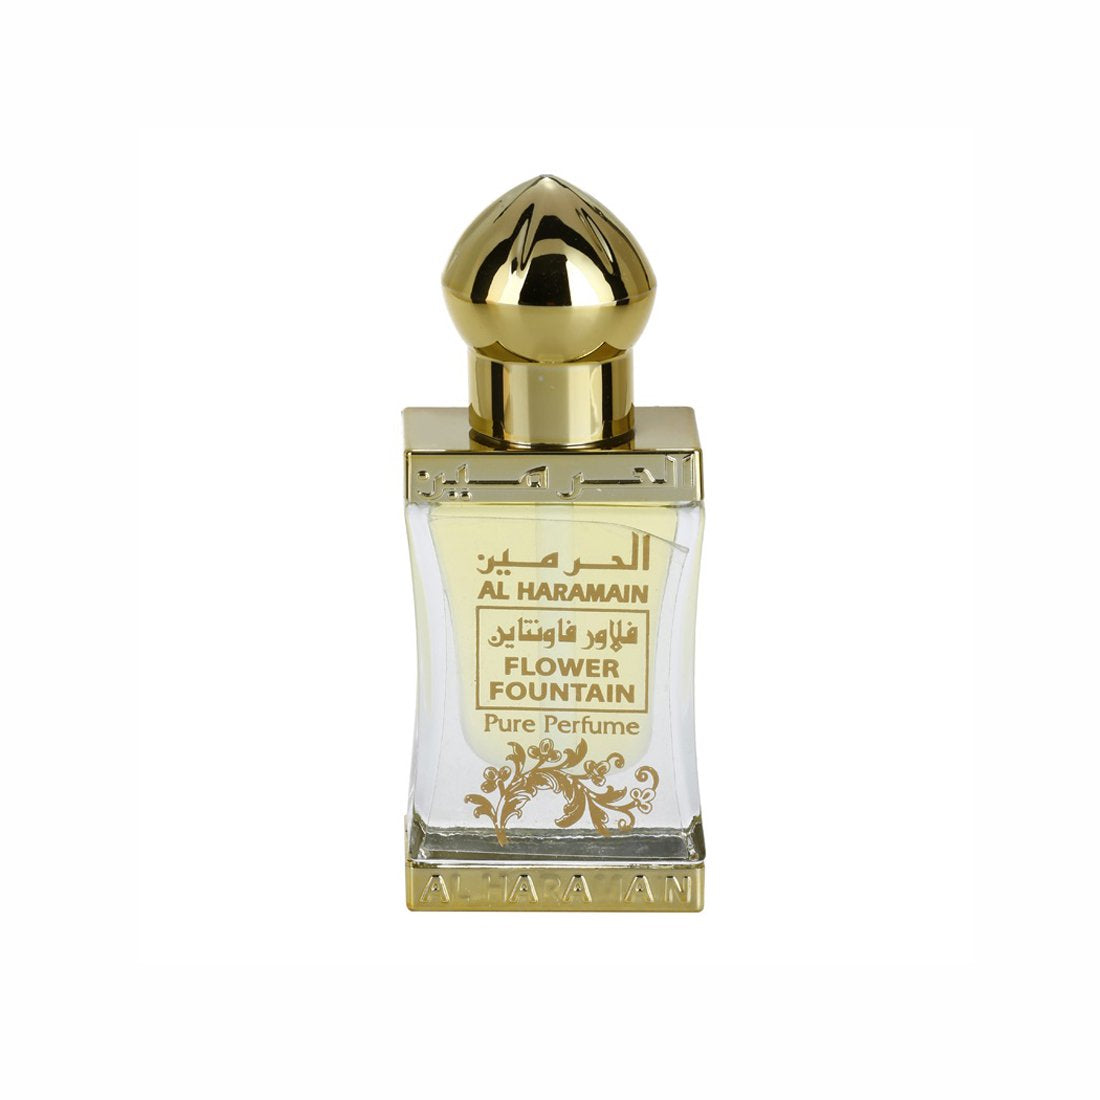 Al Haramain Flower Fountain Fragrance Pure Original Perfume Oil (Attar - 12 ml